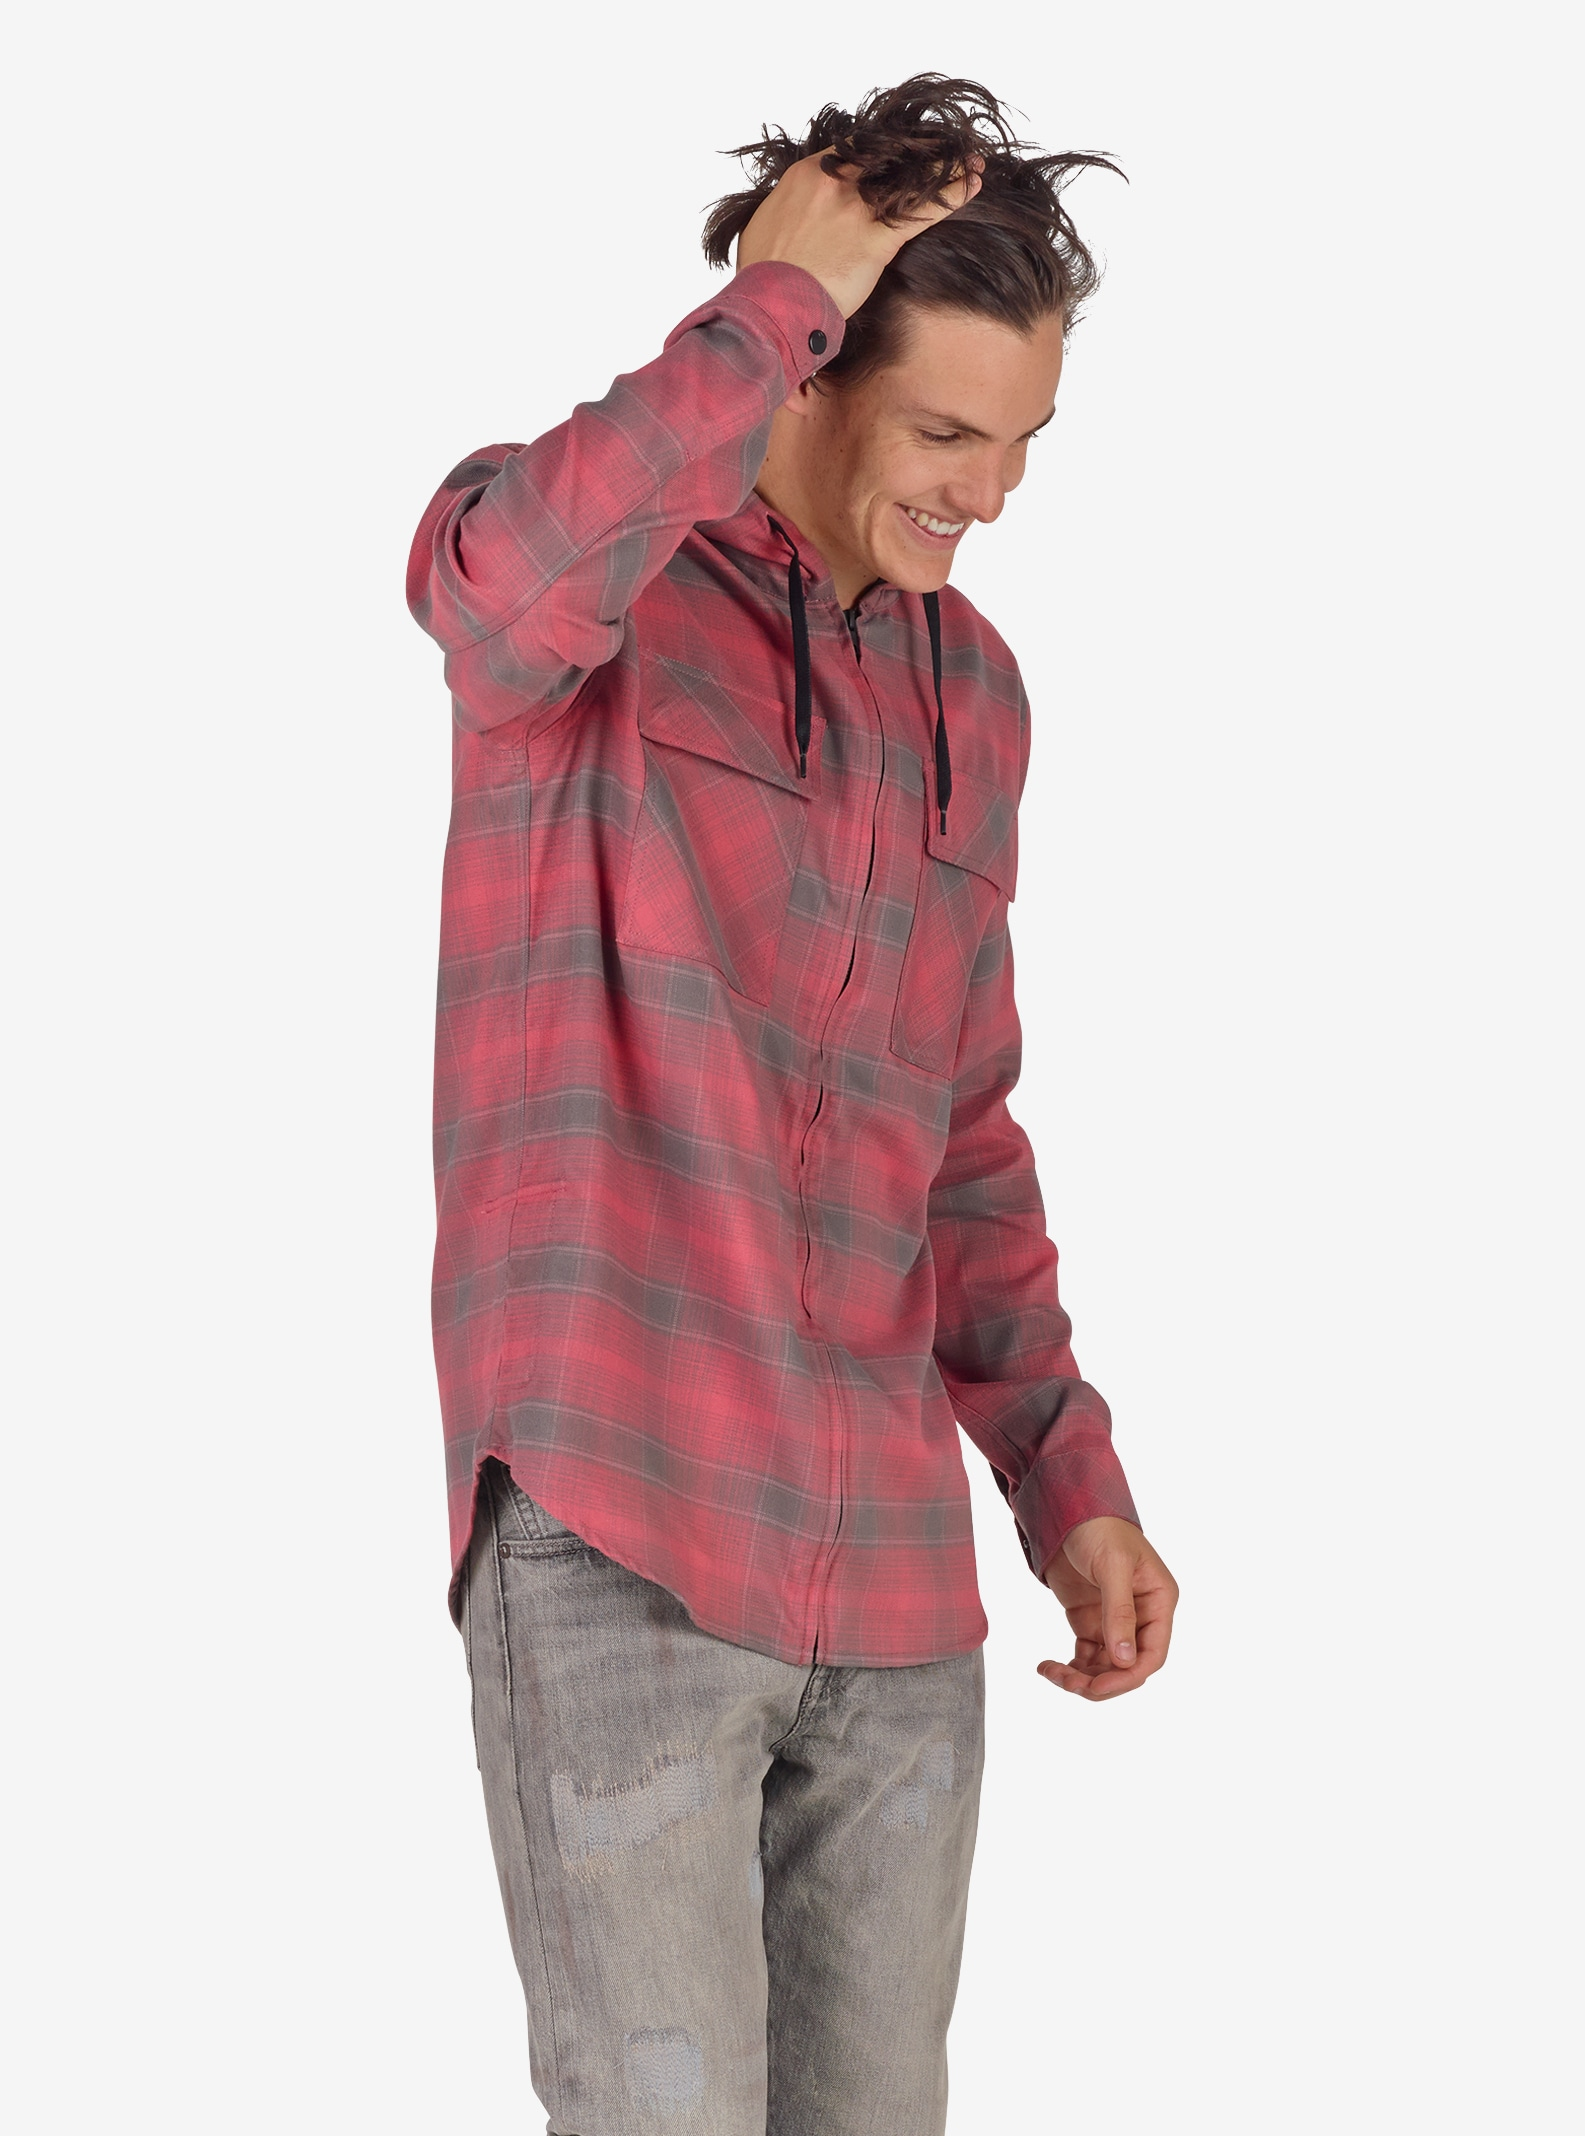 Men's Analog ATF Kaiden Hooded Flannel shown in Heathers Pacific Plaid